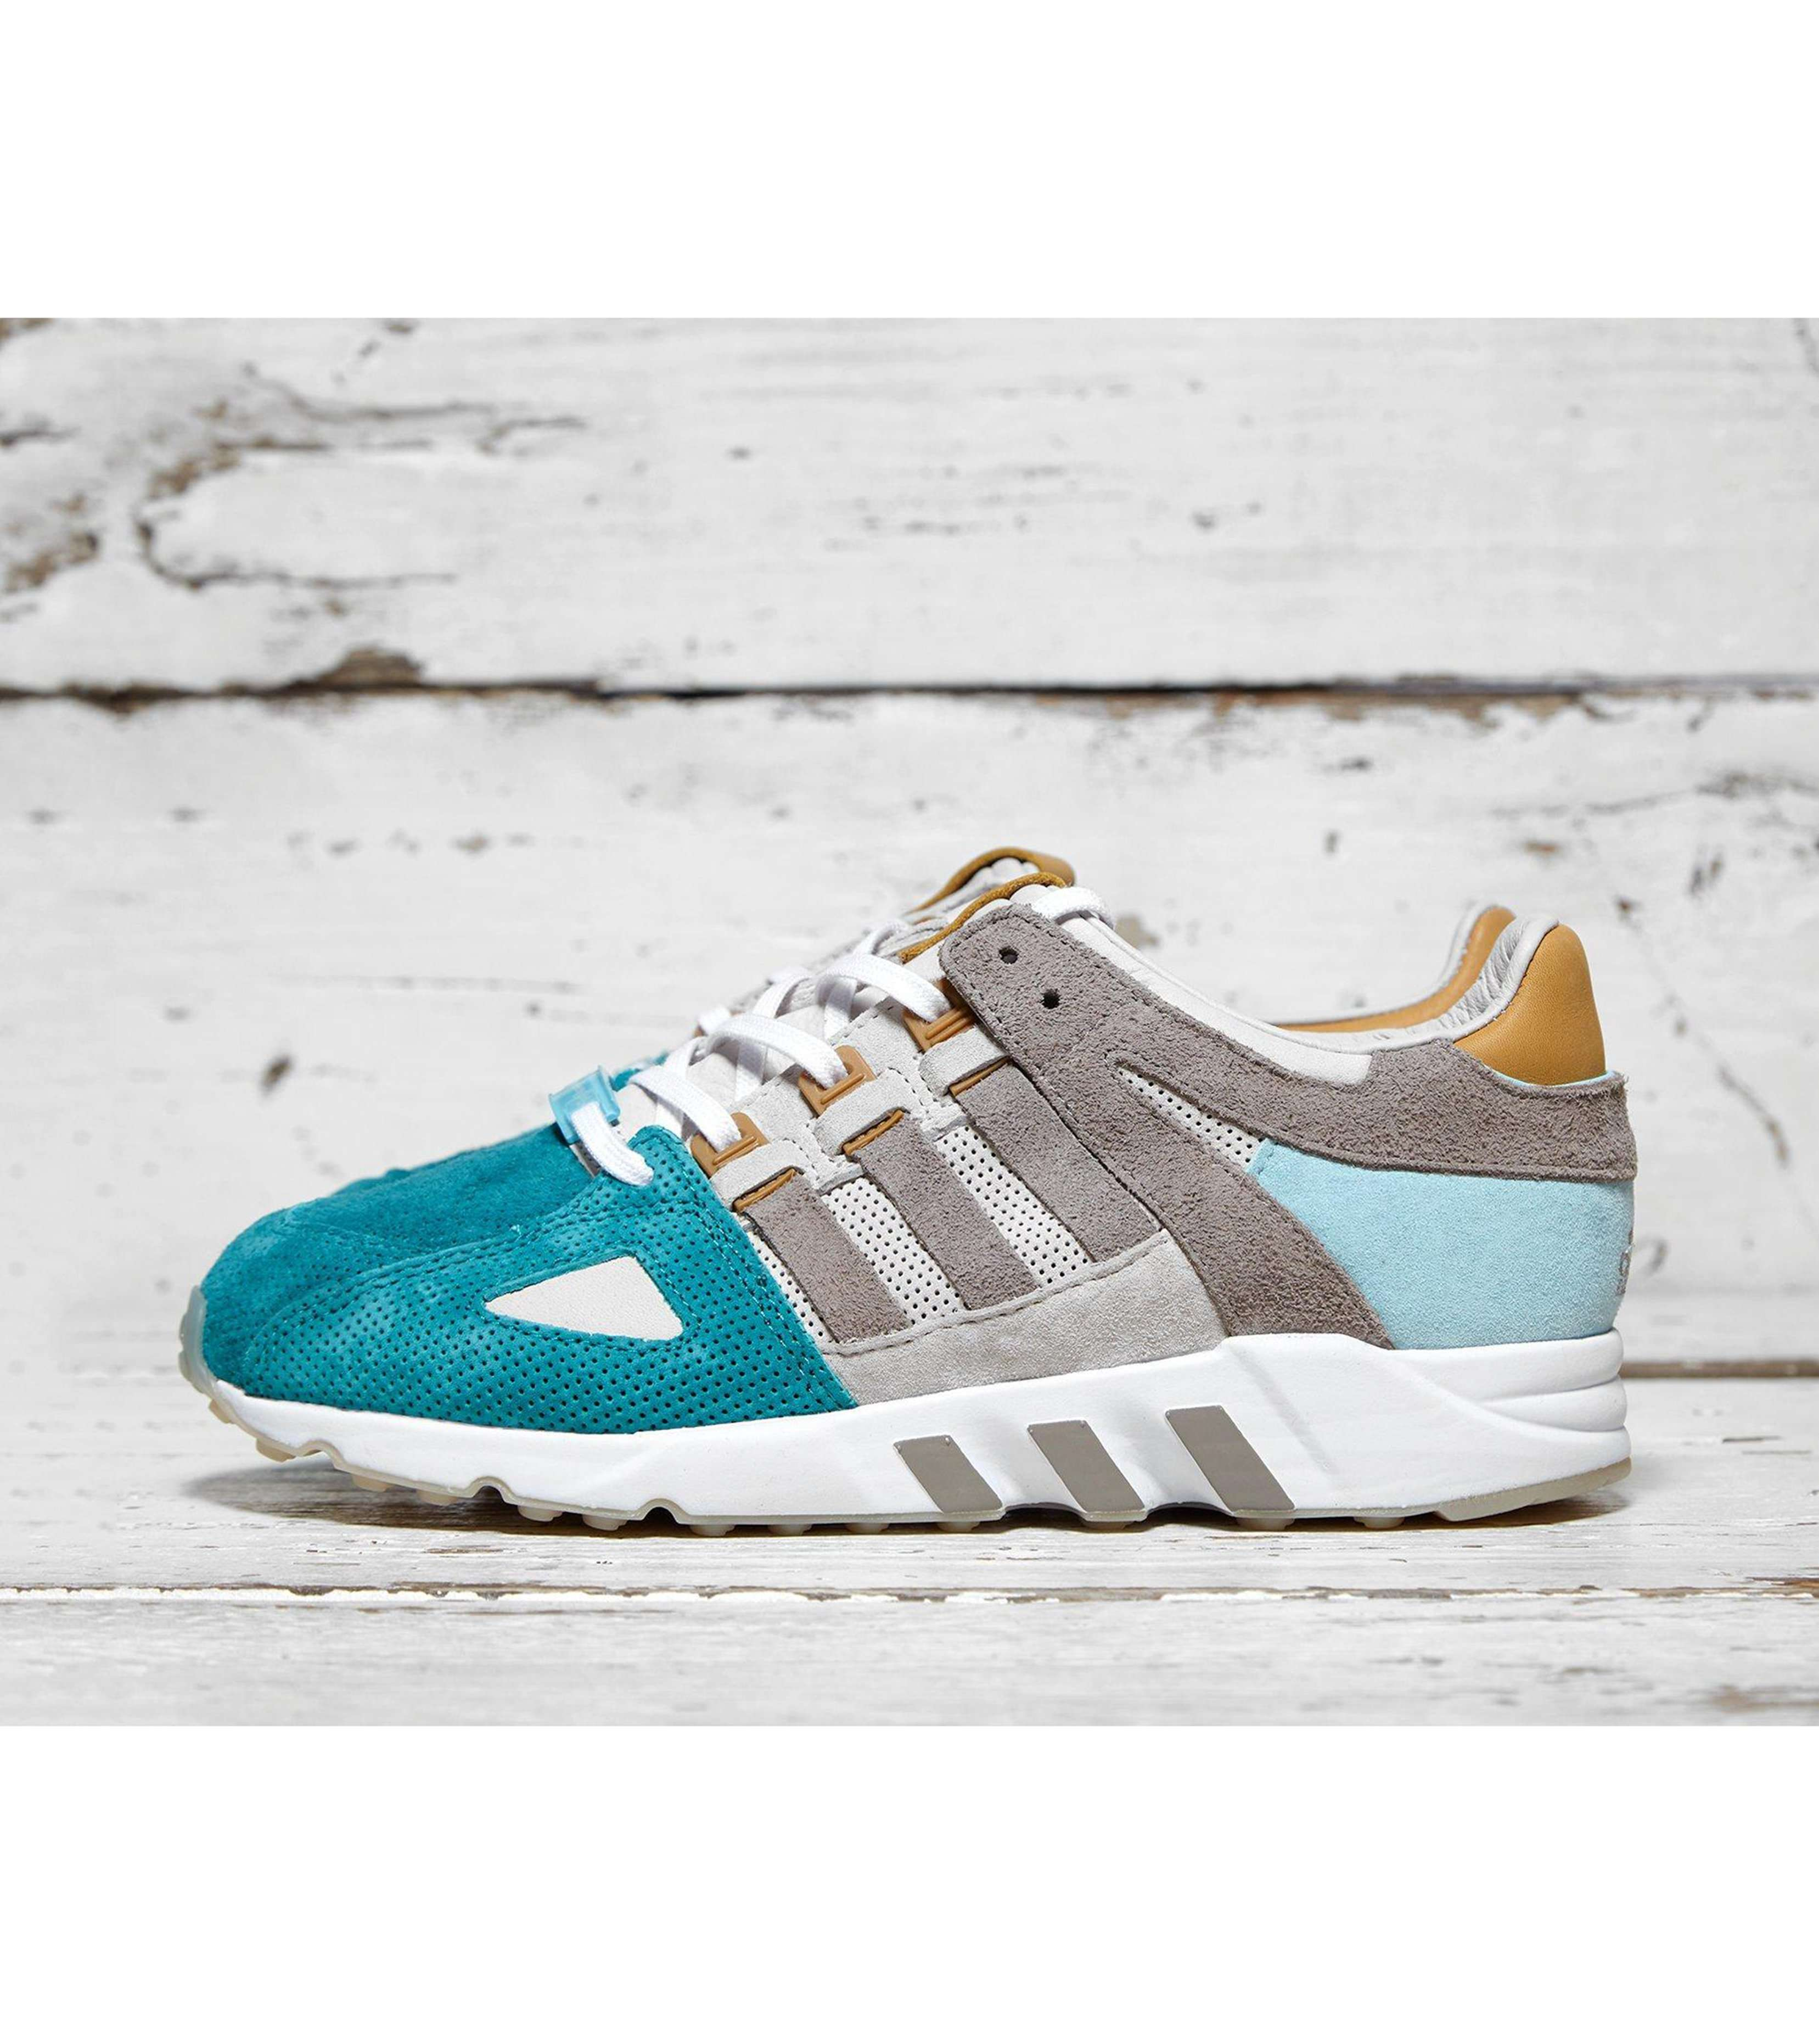 huge selection of c3e52 cdf56 adidas Consortium x Sneakers 76 EQT Guidance '93 | Size?